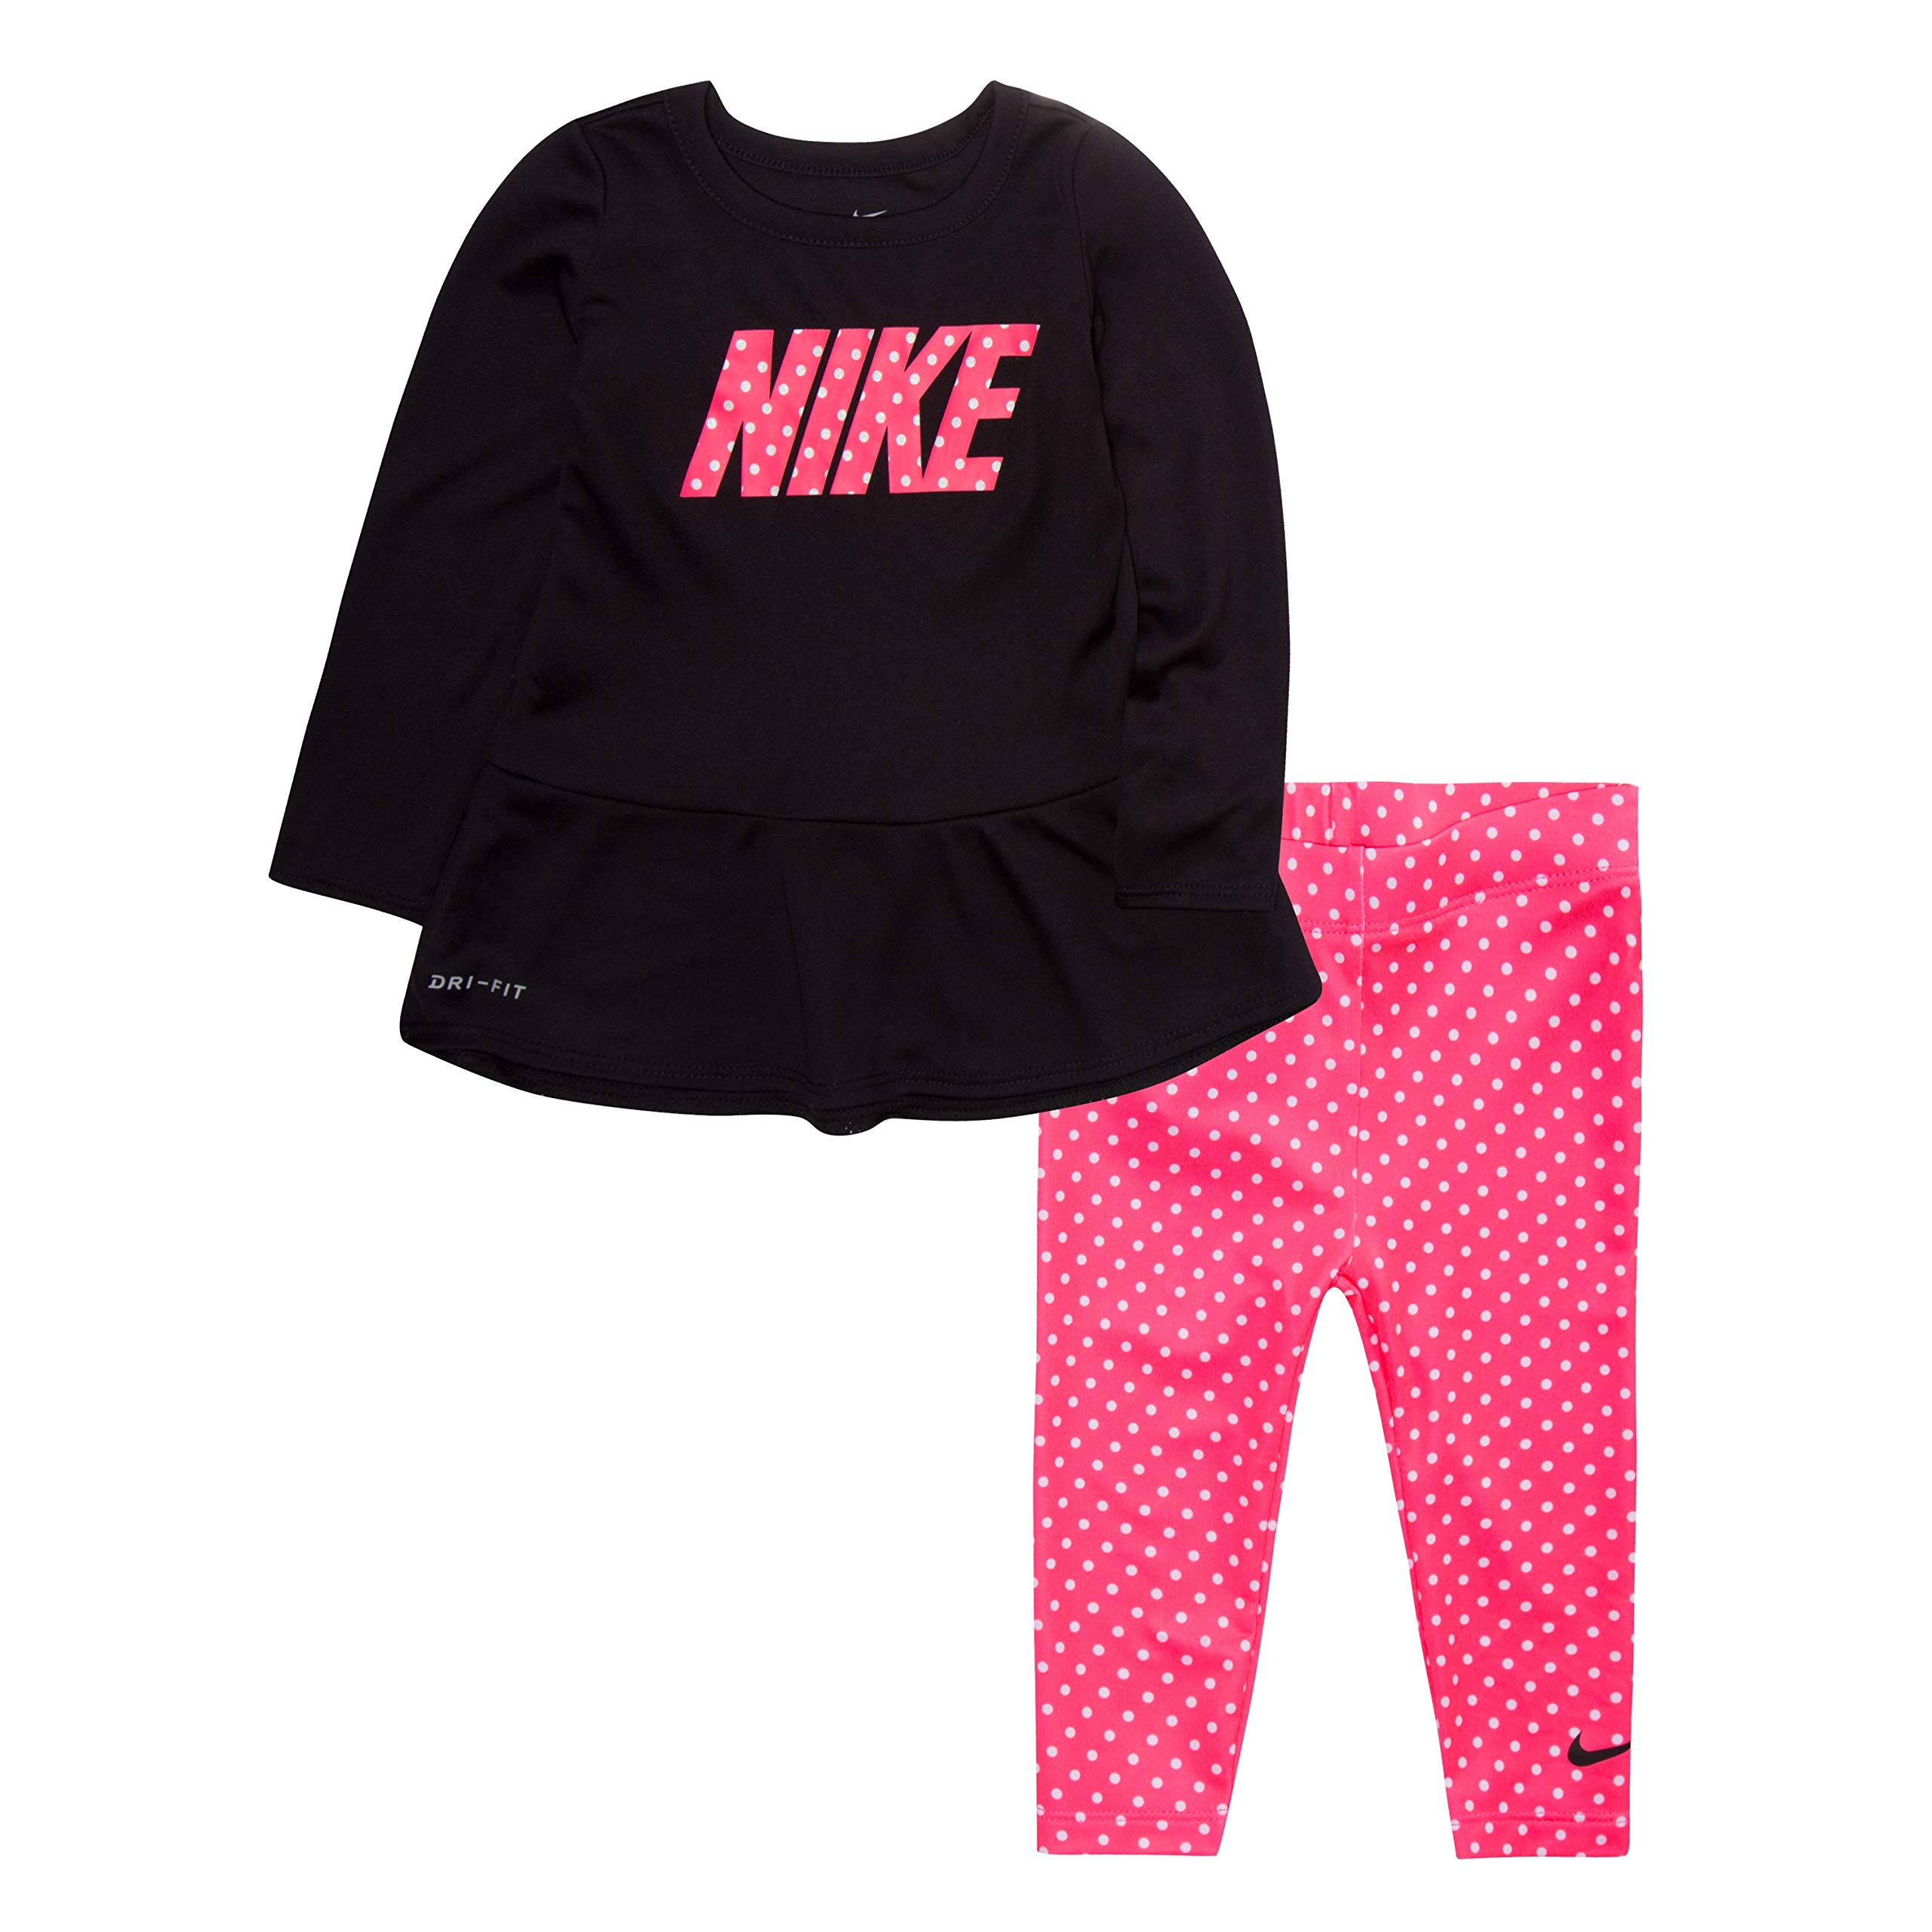 NIKE Children's Apparel Baby Girls Long Sleeve Top and Leggings 2-Piece Set, Pink Nebula Dots, 18M by NIKE Children's Apparel